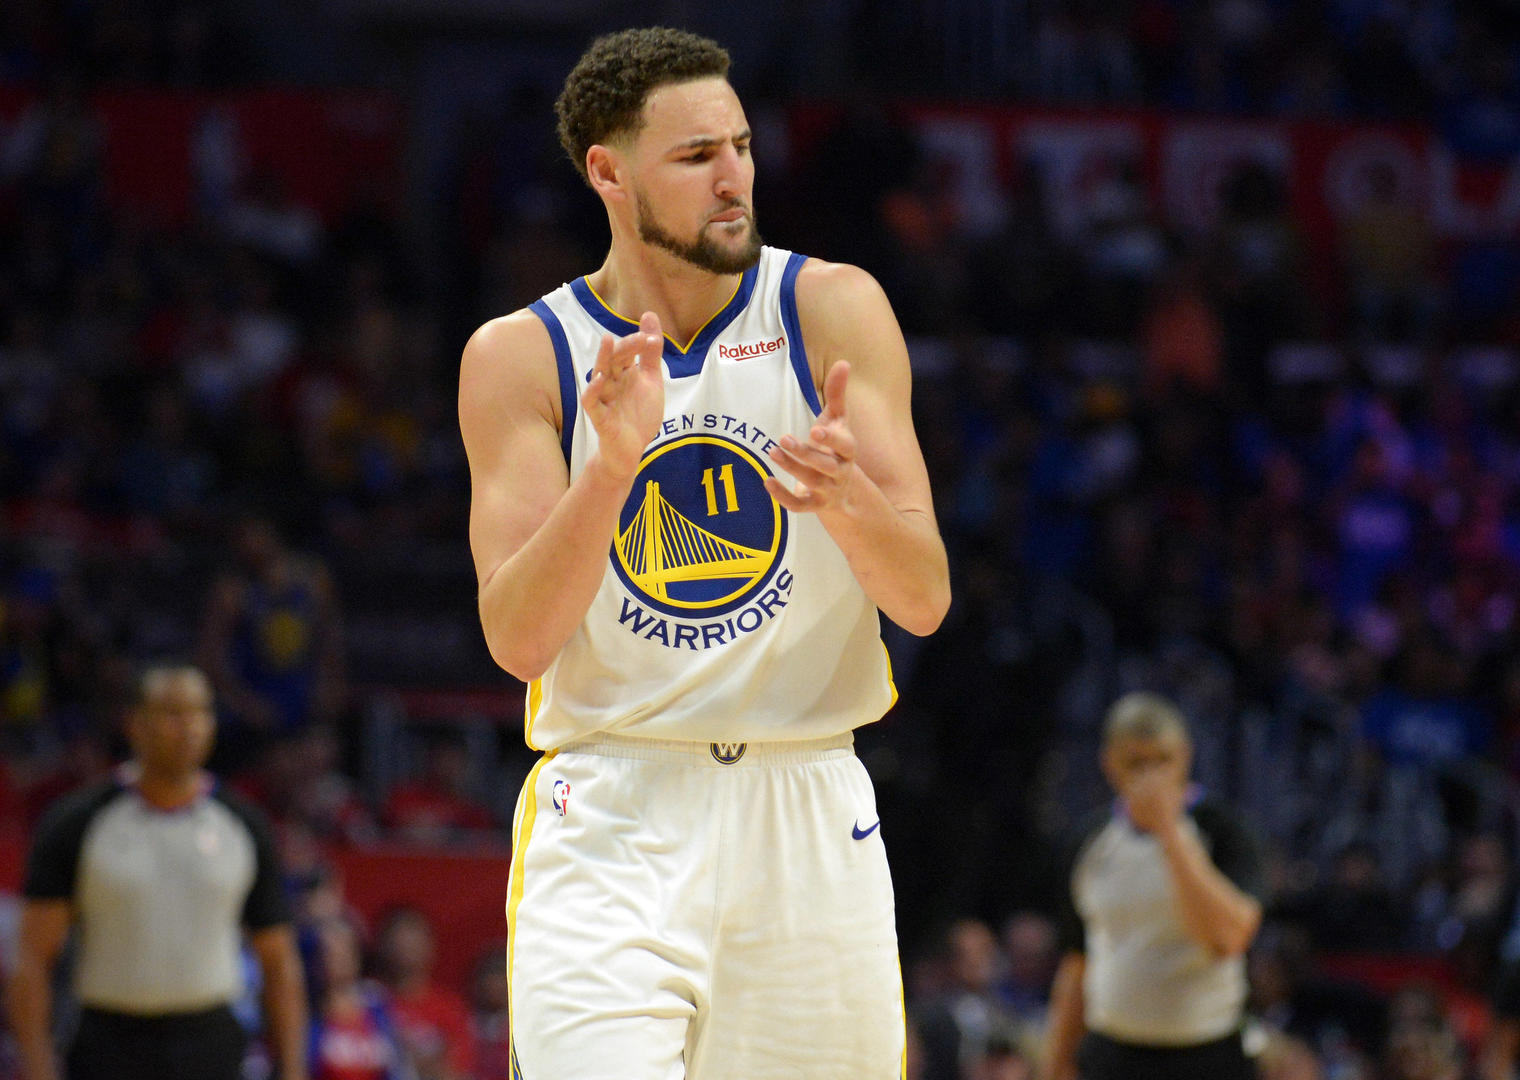 NBA Playoffs 2019: Warriors vs. Clippers odds, picks, Game 5 predictions from model on 84-57 run